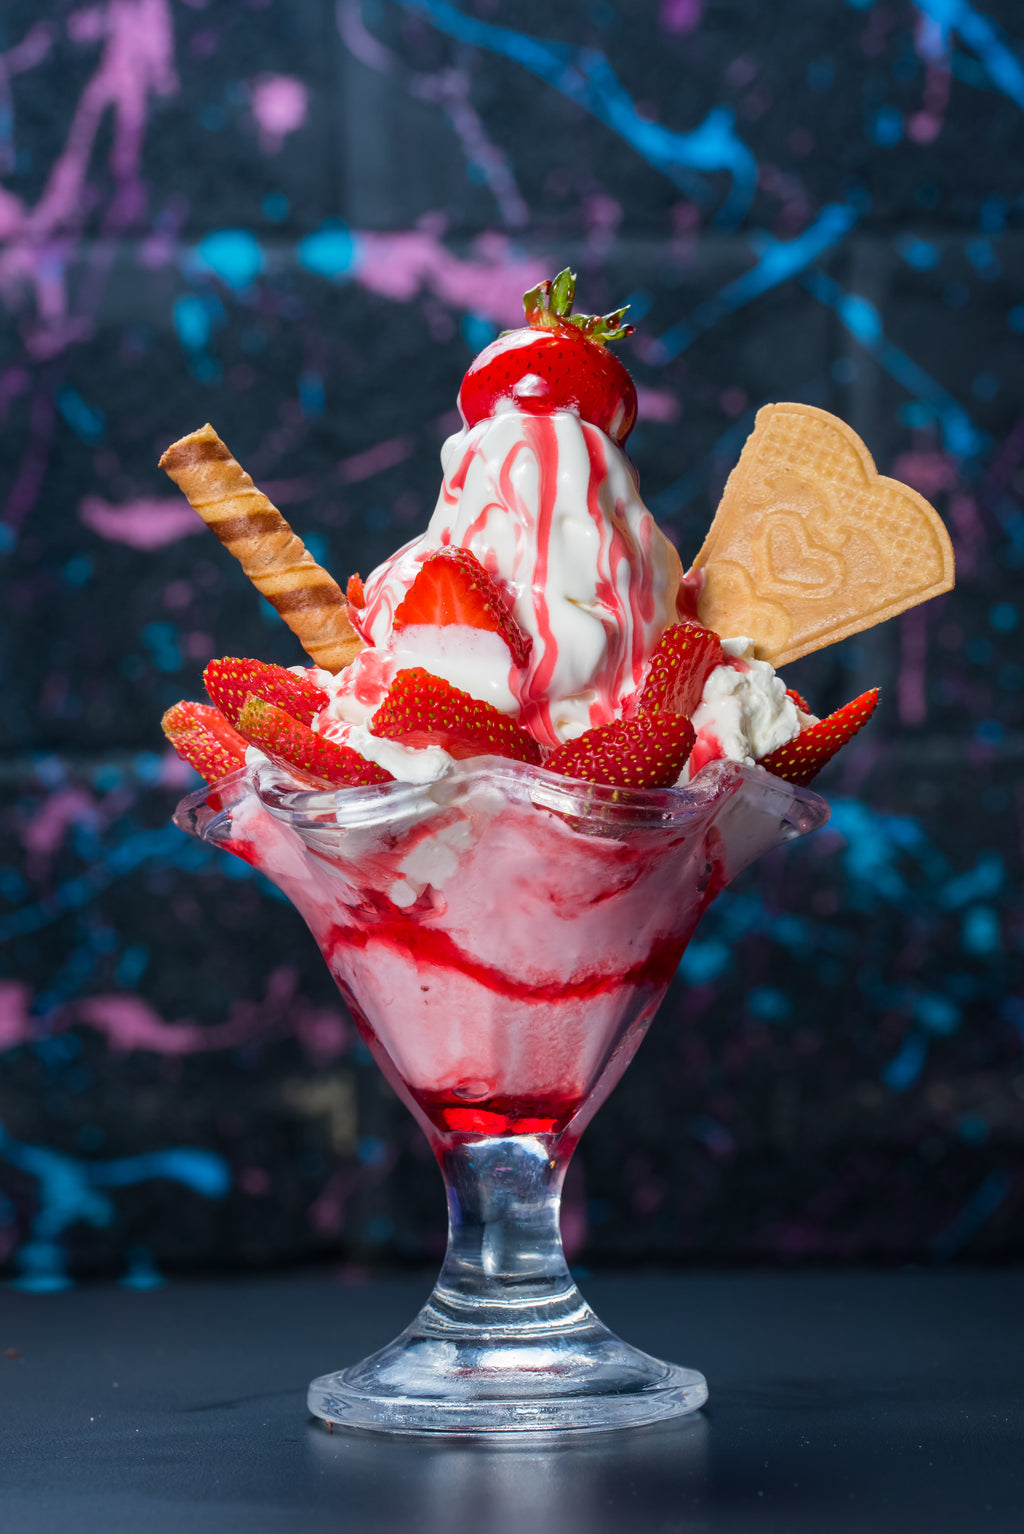 Knickerbocker Glory